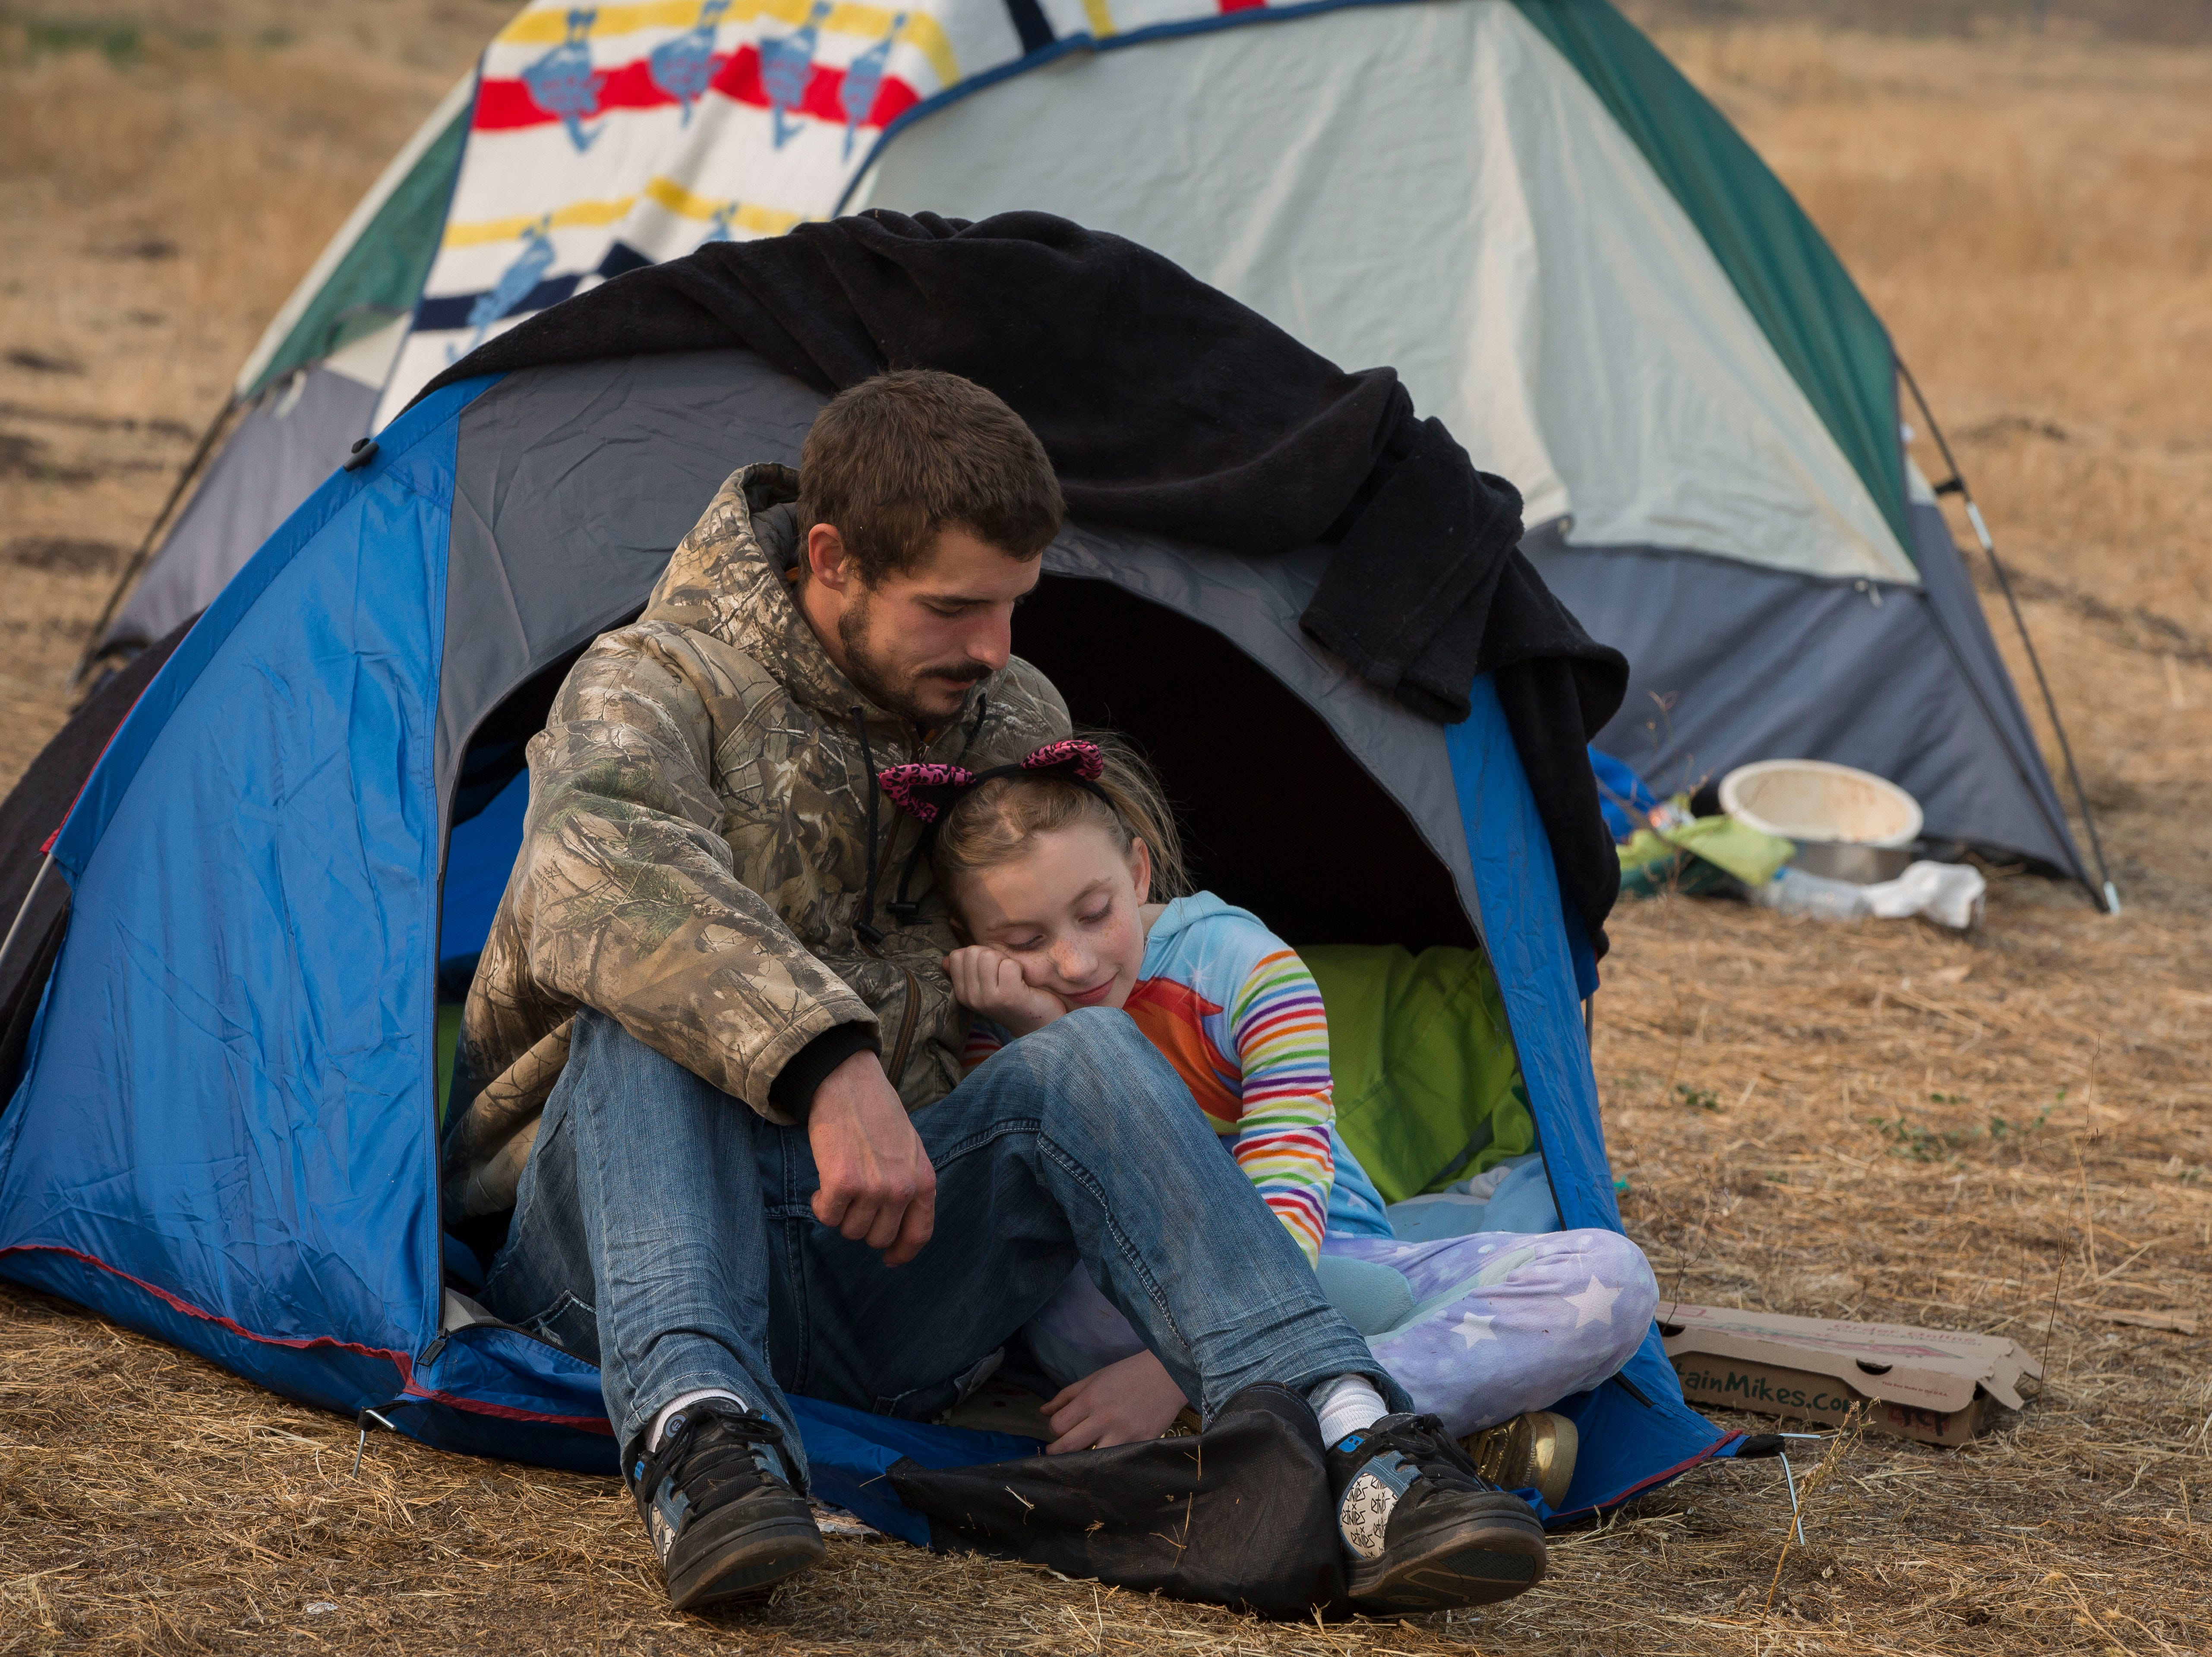 Ryan Belcher, 9, left comforts his daughter Zoeylee, 10, where they are camping with their family at the Walmart in Chico, CA, Saturday Nov. 17, 2018. The Belcher family lost their home and vehicles to the Camp Fire.